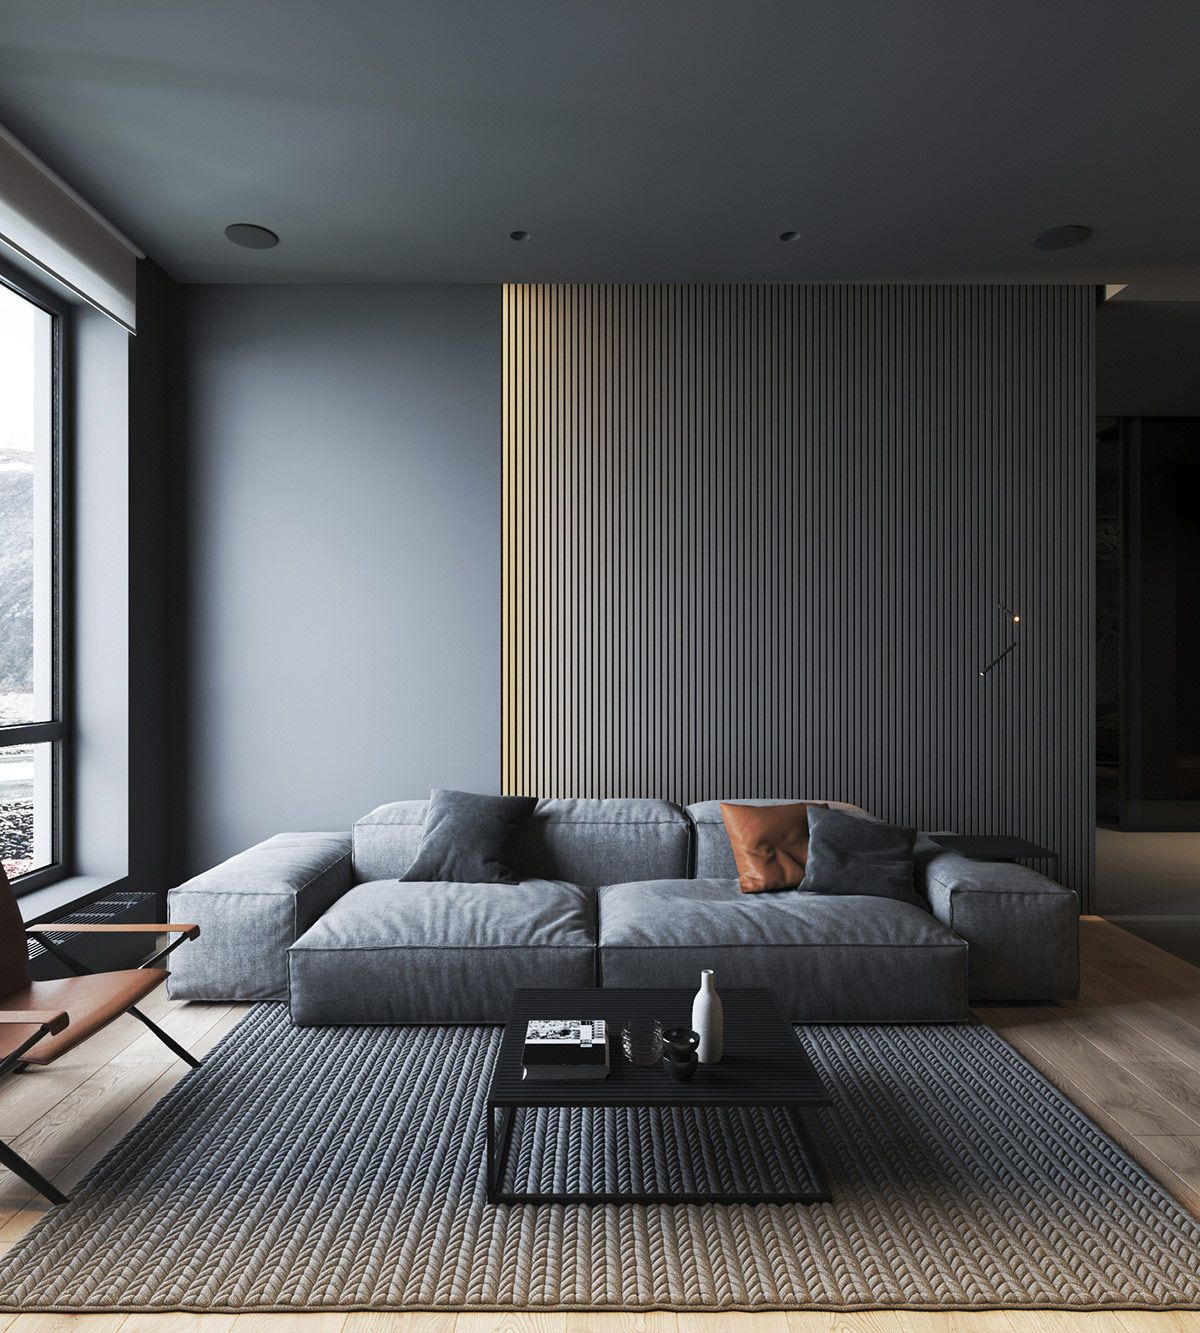 How To Use Lighting And Textures To Add Interest To Dark Interiors Apartment Design Dark Interiors Living Room Interior